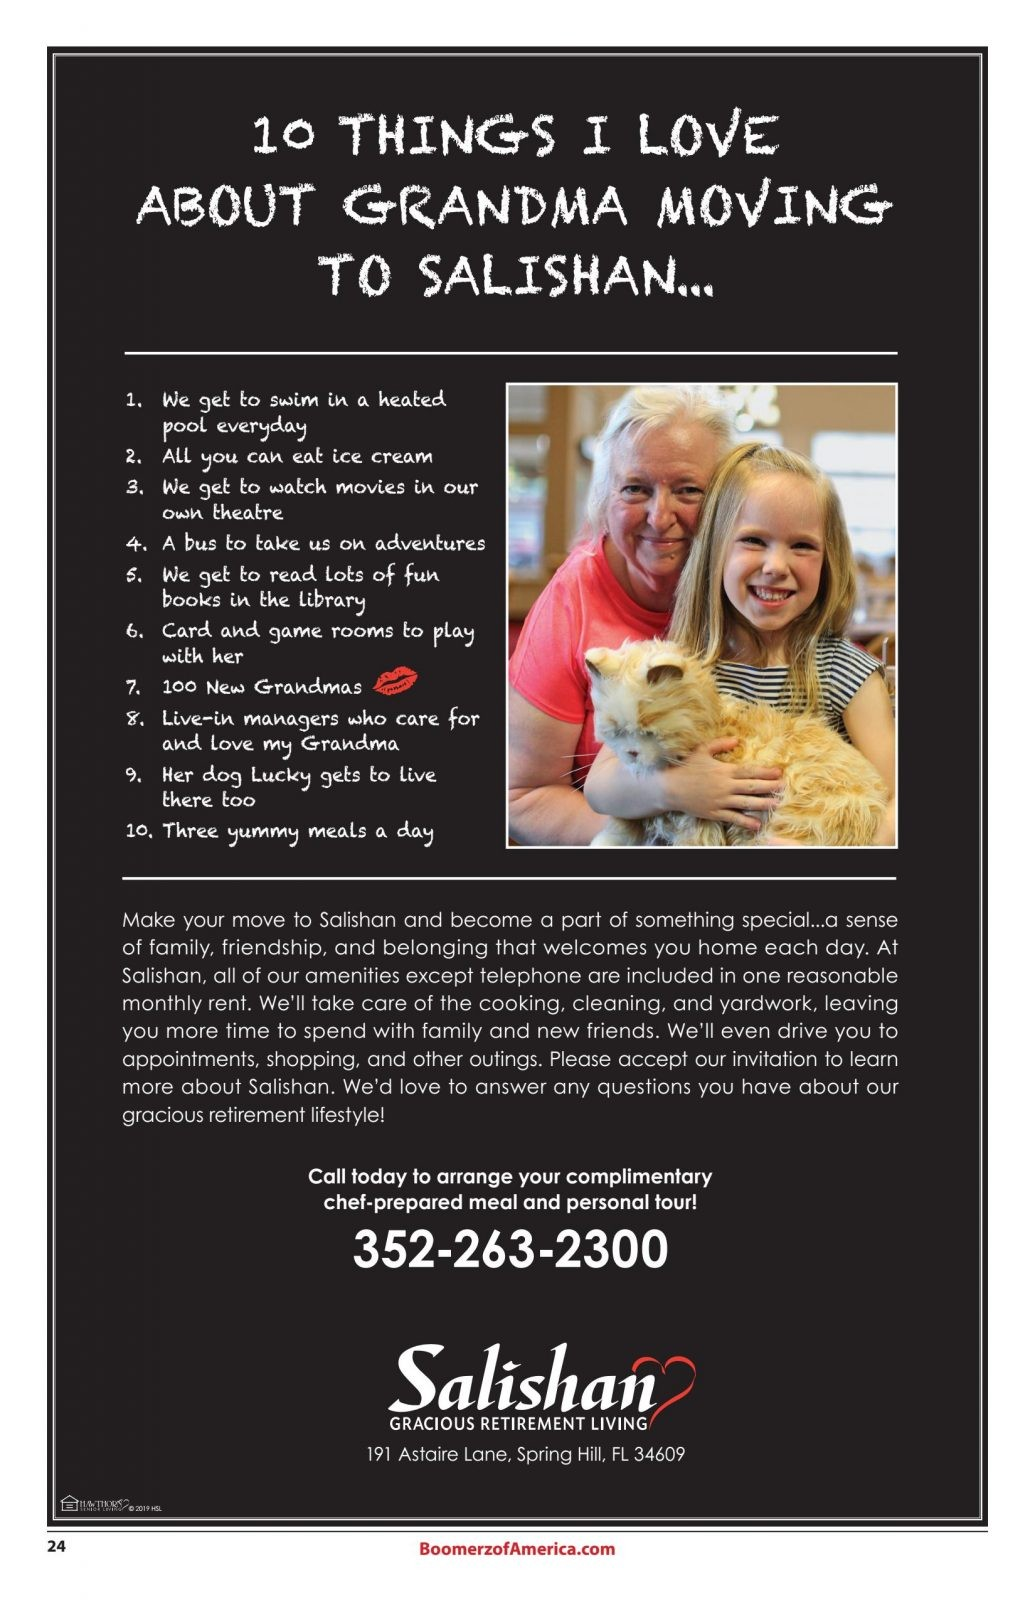 Boomerz August 2019 Salishan 10 Things I Love about Grandma